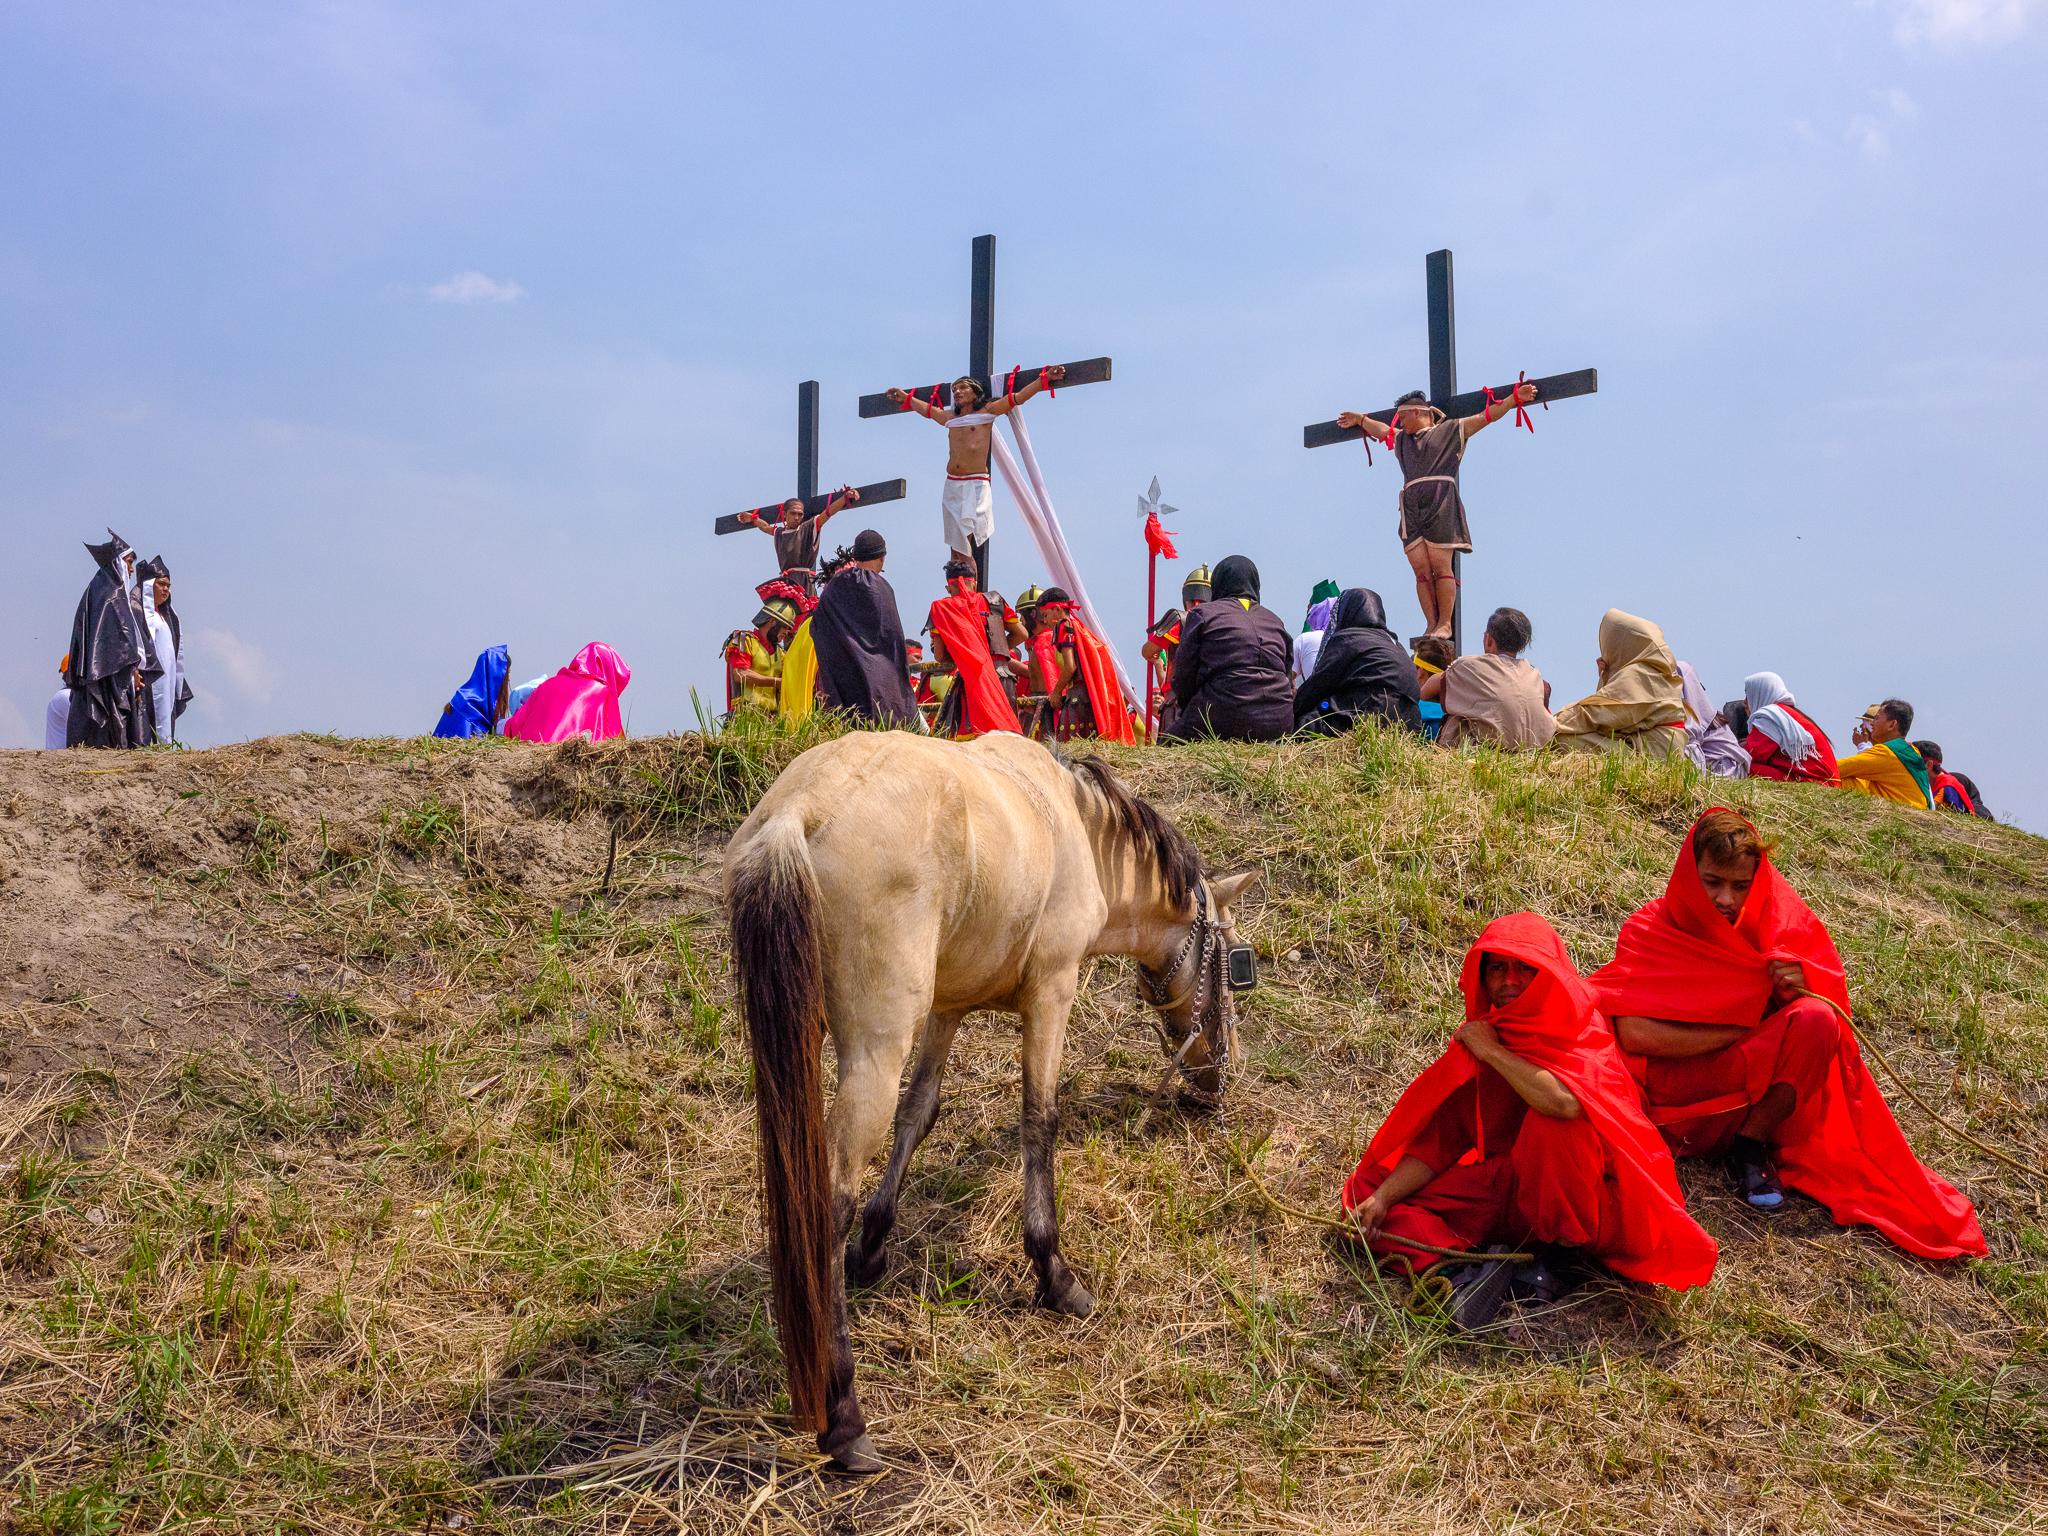 A wider view of the hilltop scene, the horsemen had arrived to start the spectacle before the crucifixions. Fuji GFX, 45mm.